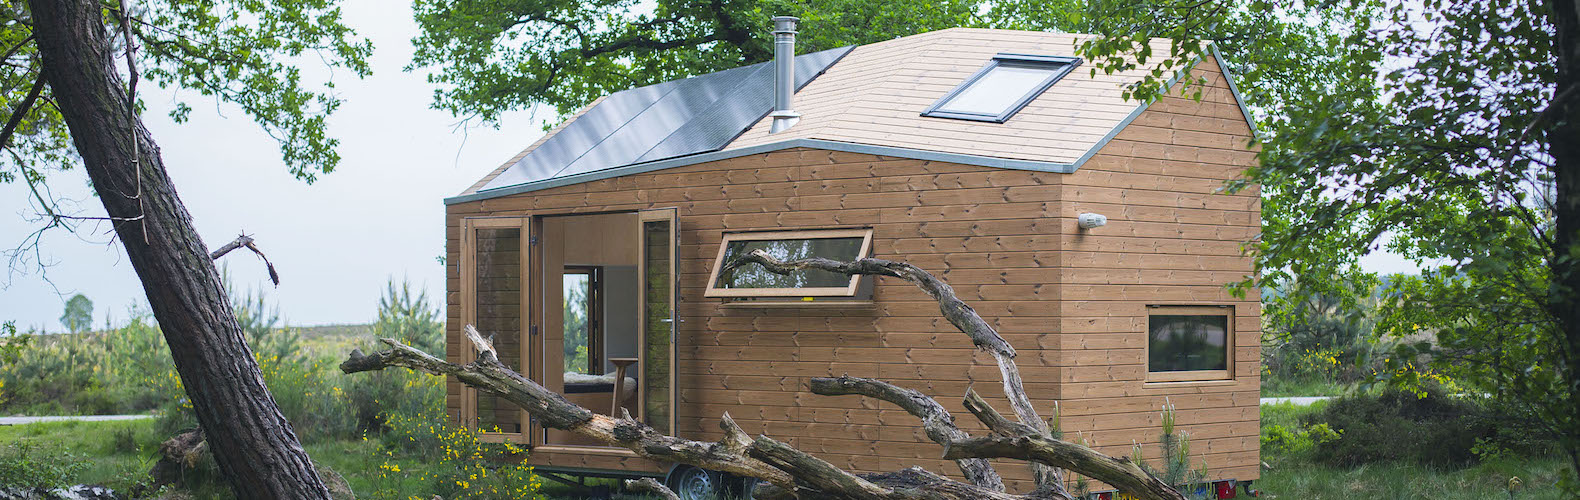 Dimka Wentzel, Ecoboard, Marjolein Jonker, Marjolein Jonker tiny house, off grid tiny house, rainwater harvesting, solar panels, the netherlands, thermally modified pine wood, tiny house, Walden Studio